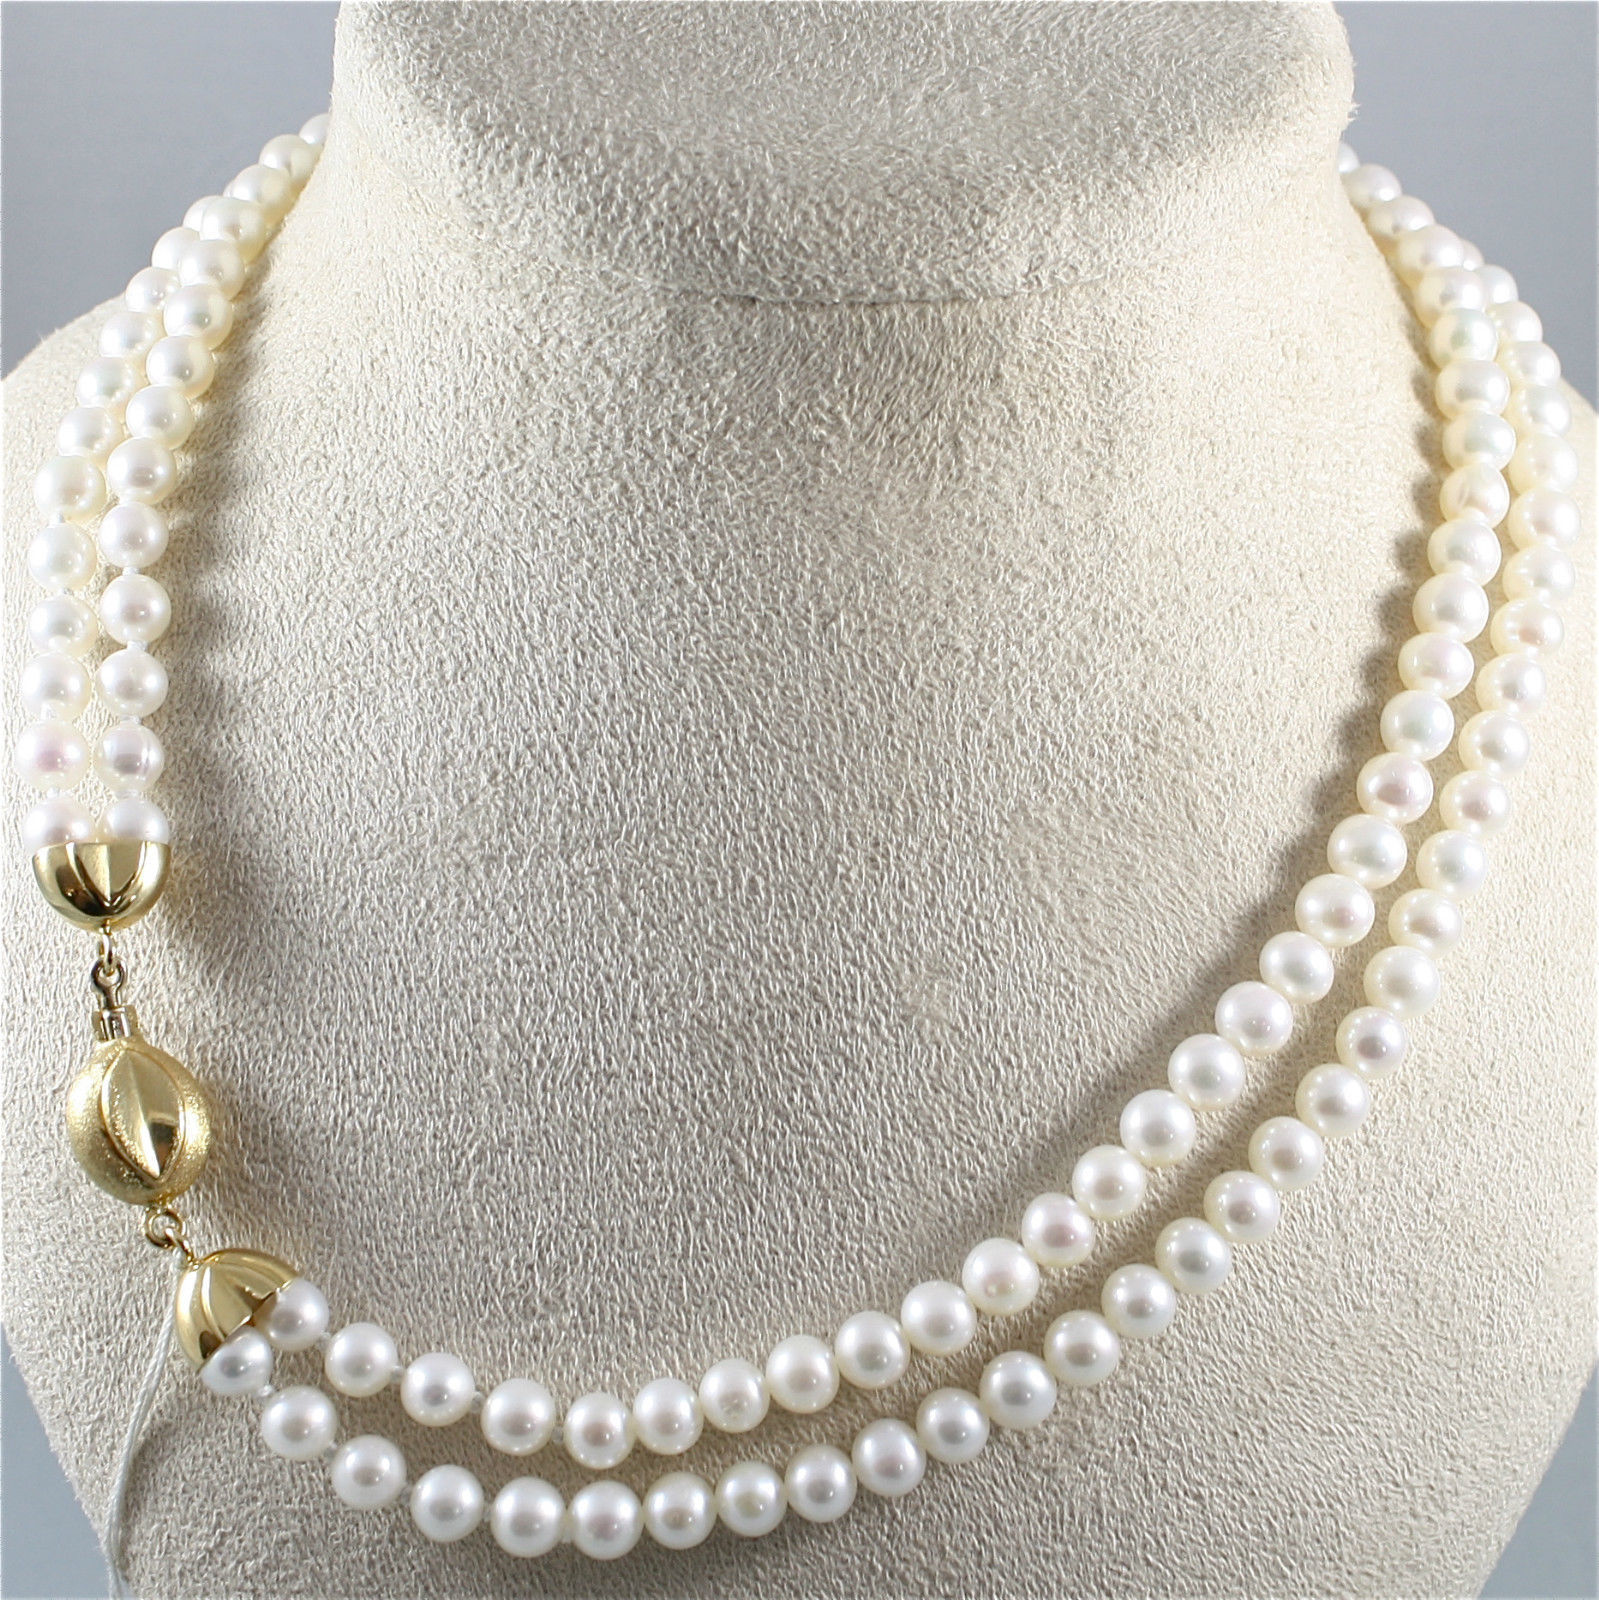 NECKLACE WITH TWO-WIRE WHITE PEARLS DIAMETER .26 In, 18K 750 YELLOW GOLD CLOSURE